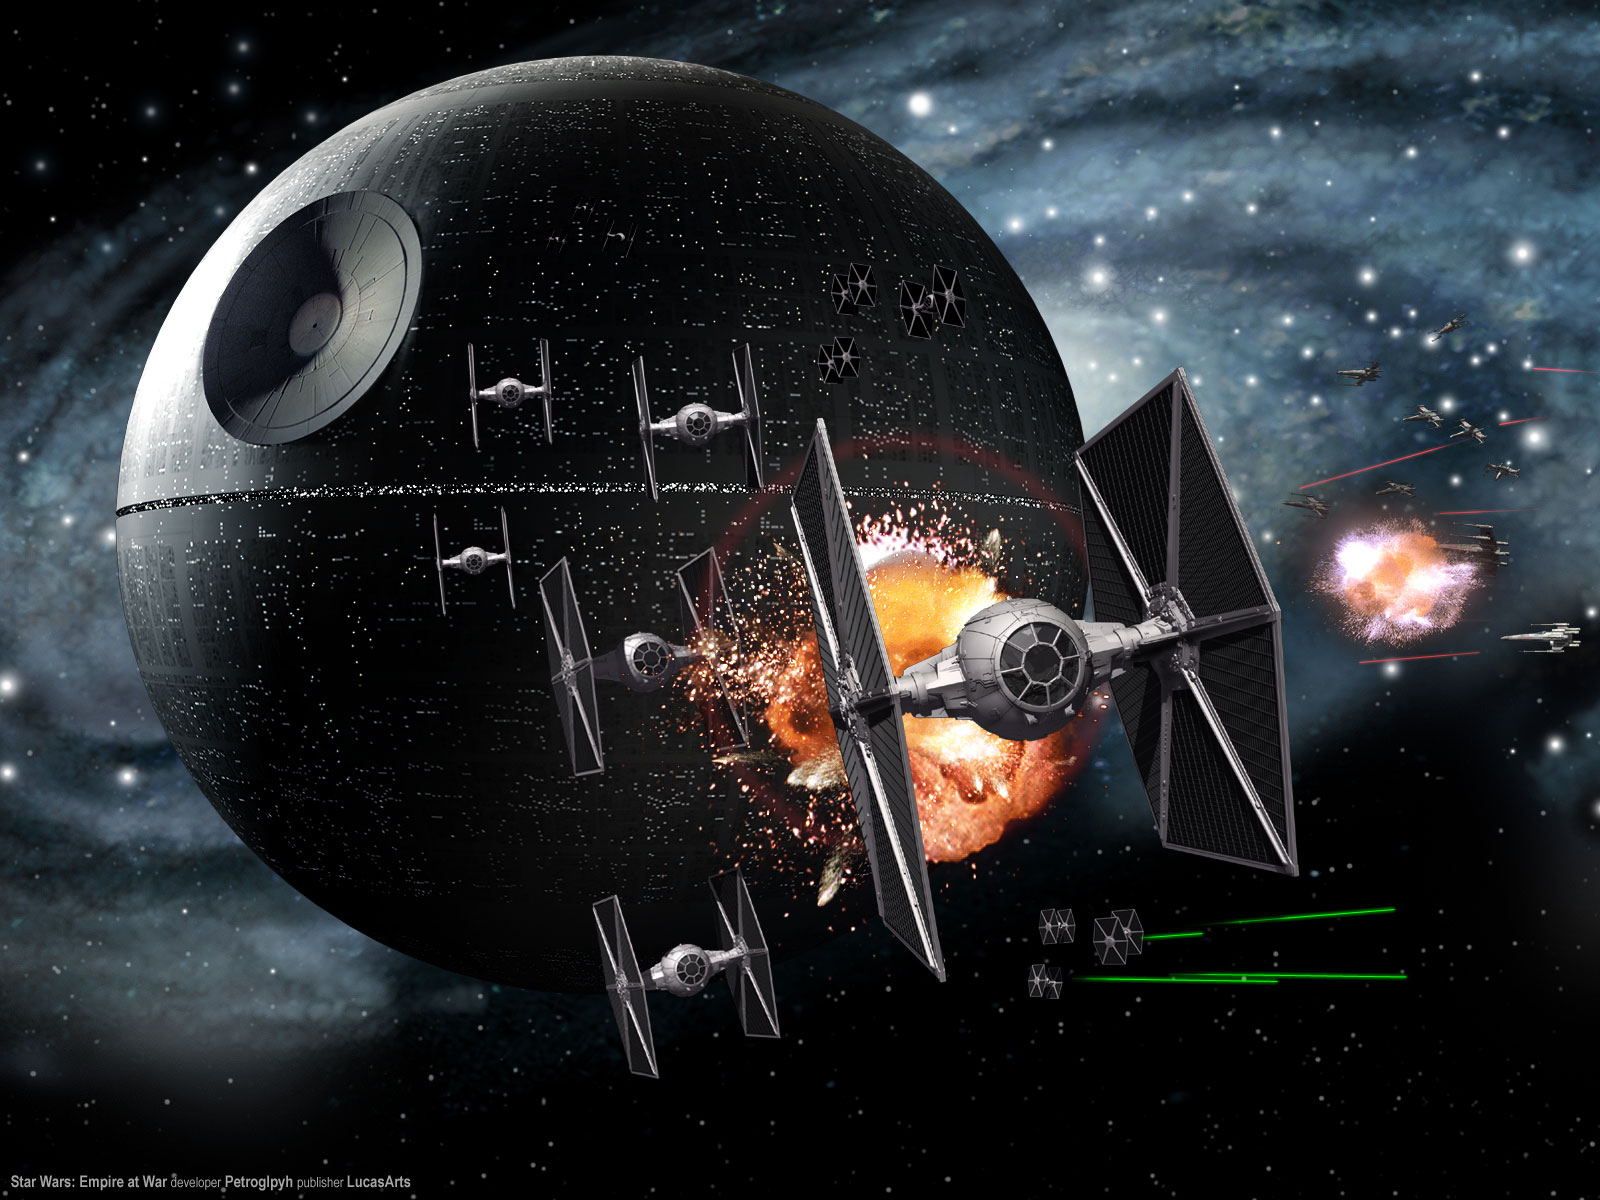 Star Wars Wallpaper High Resolution Posted By Zoey Simpson